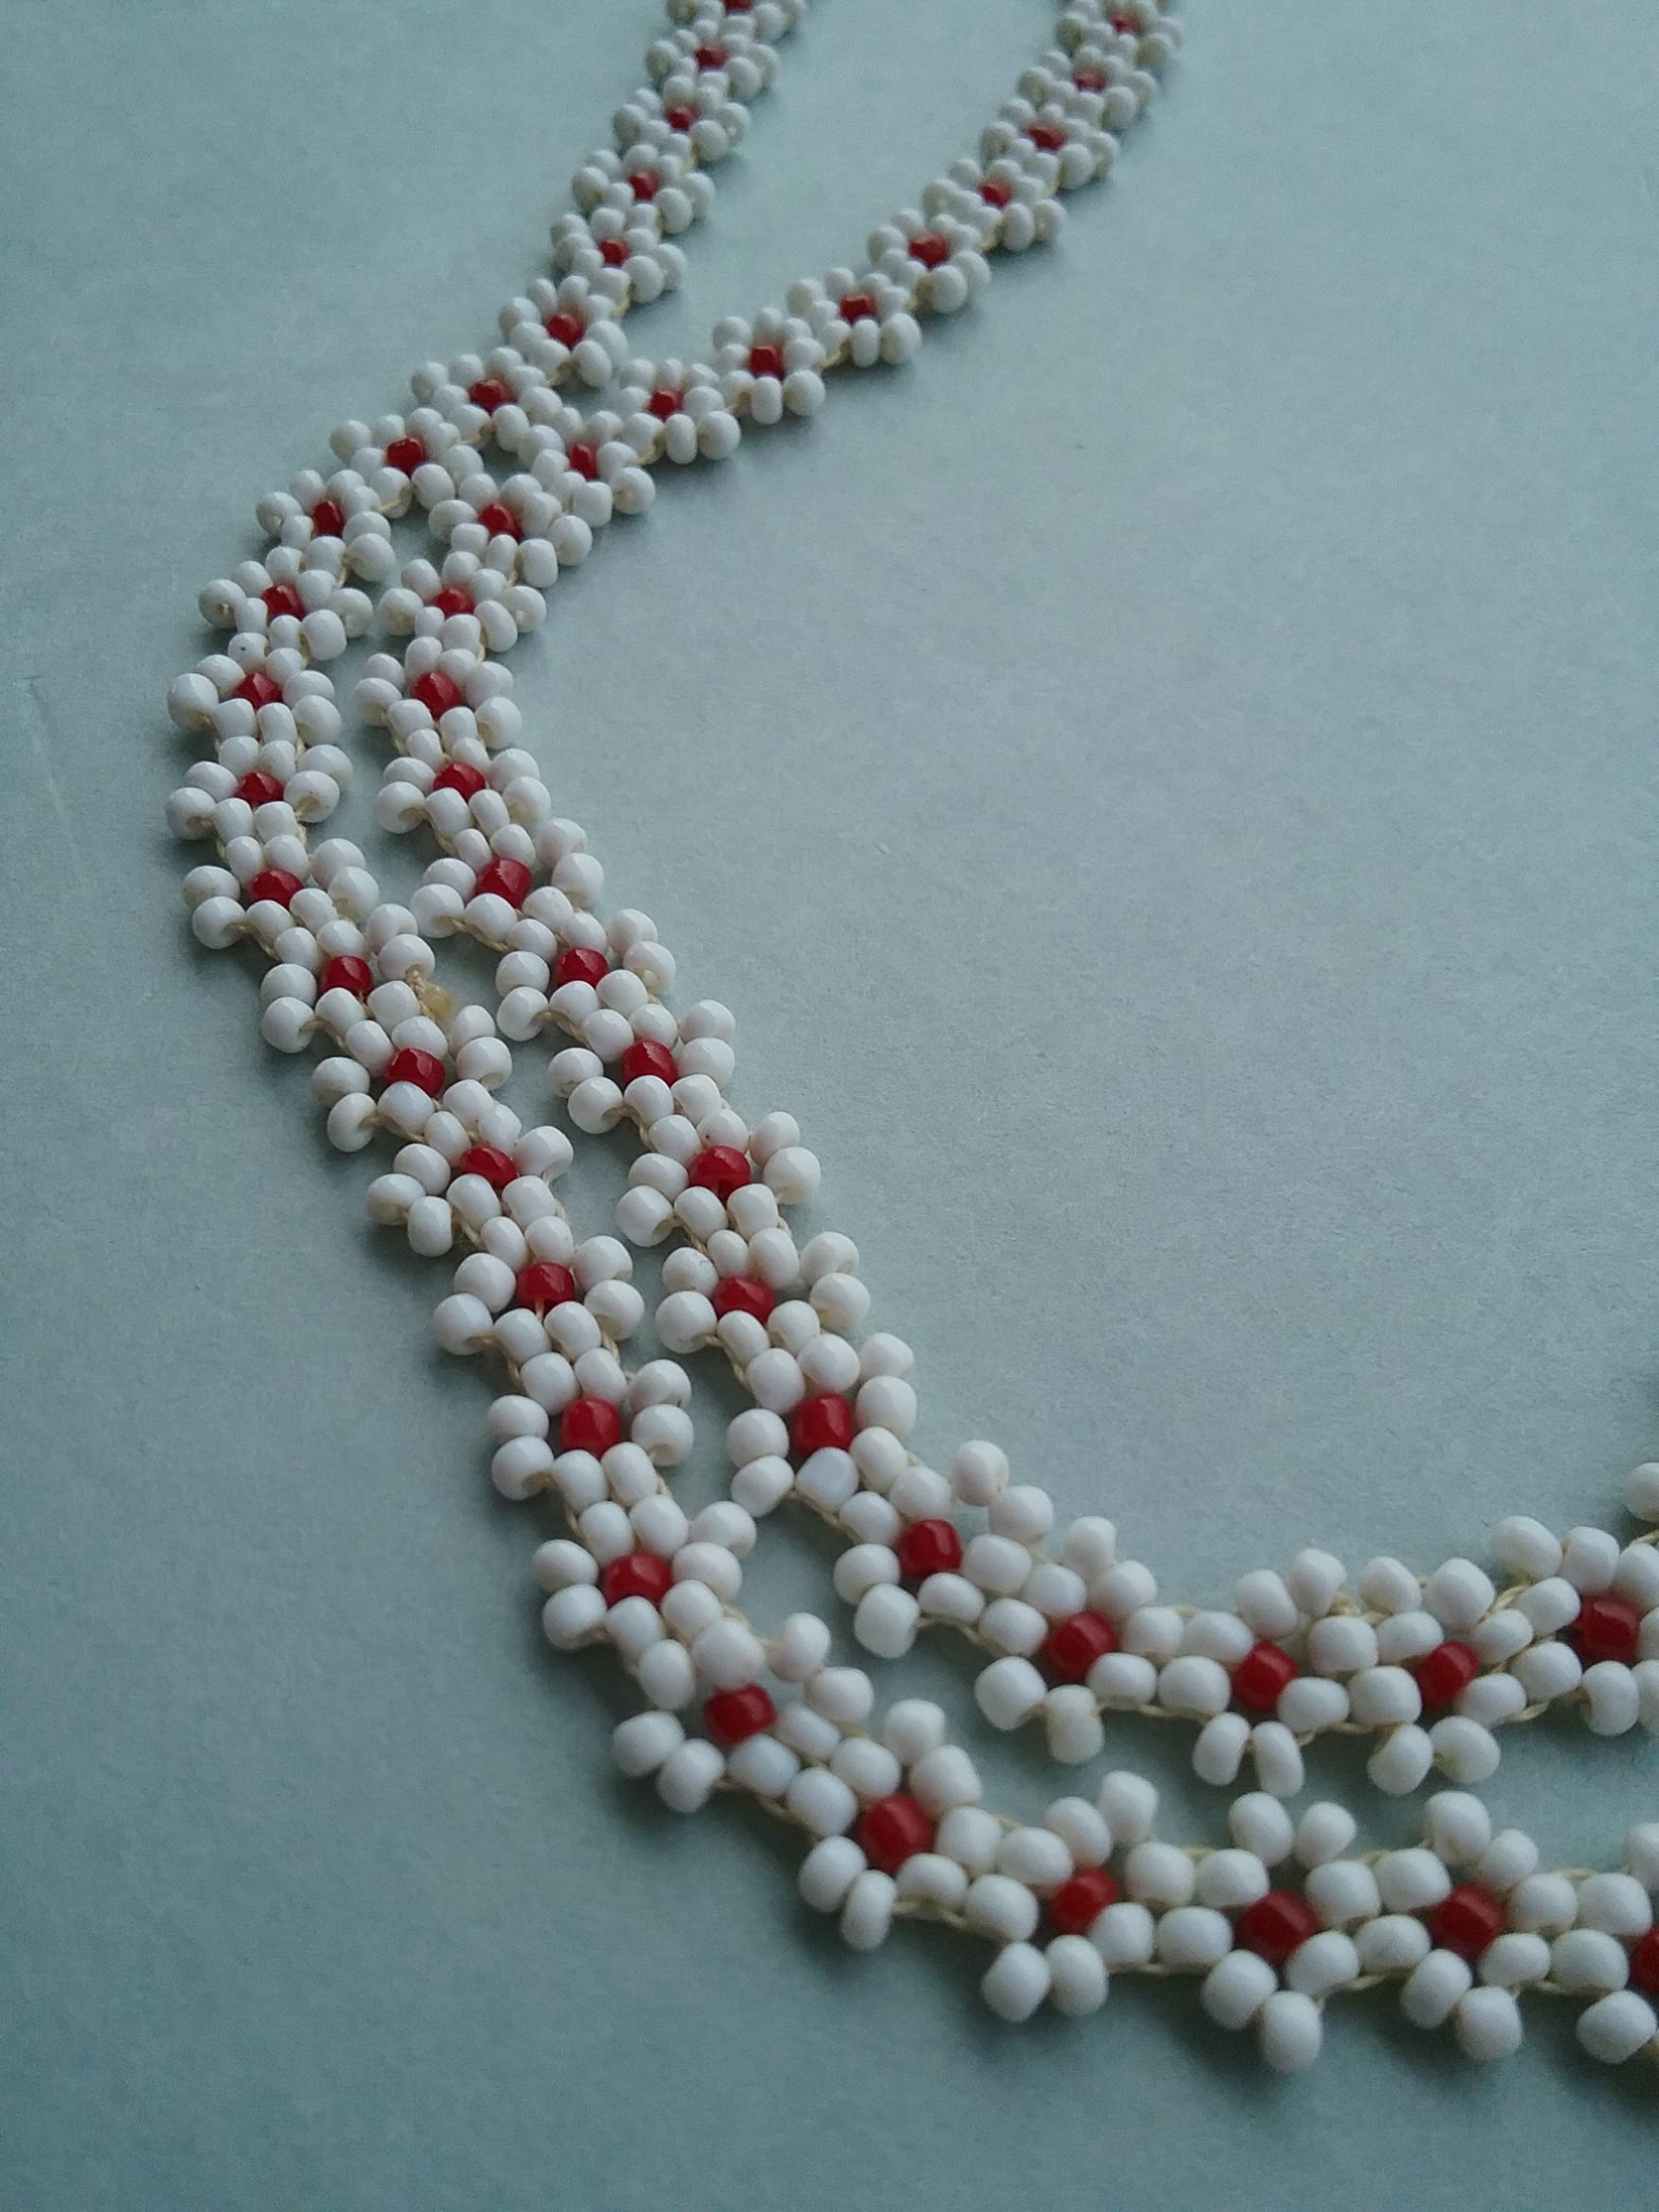 Detail of Seed Bead Necklace. MCHS collections, #2004.87.1.